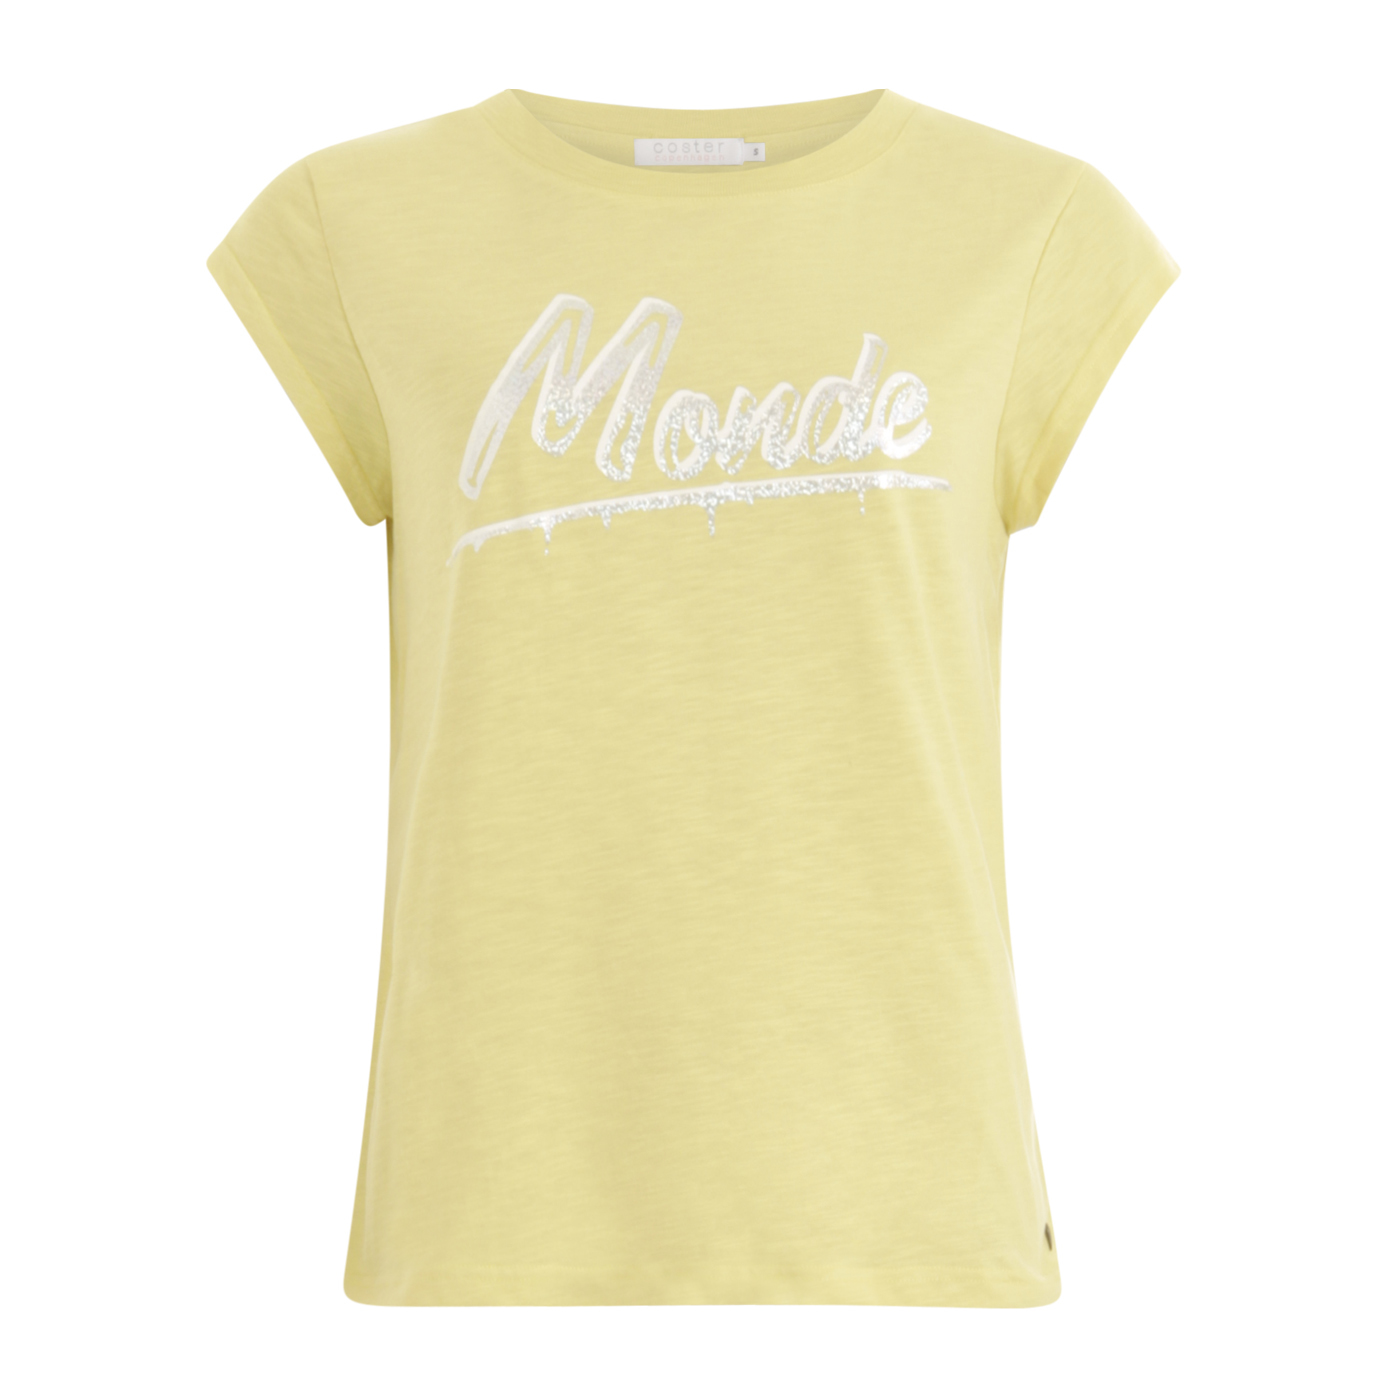 Coster Copenhagen T shirt with monde print Light yellow